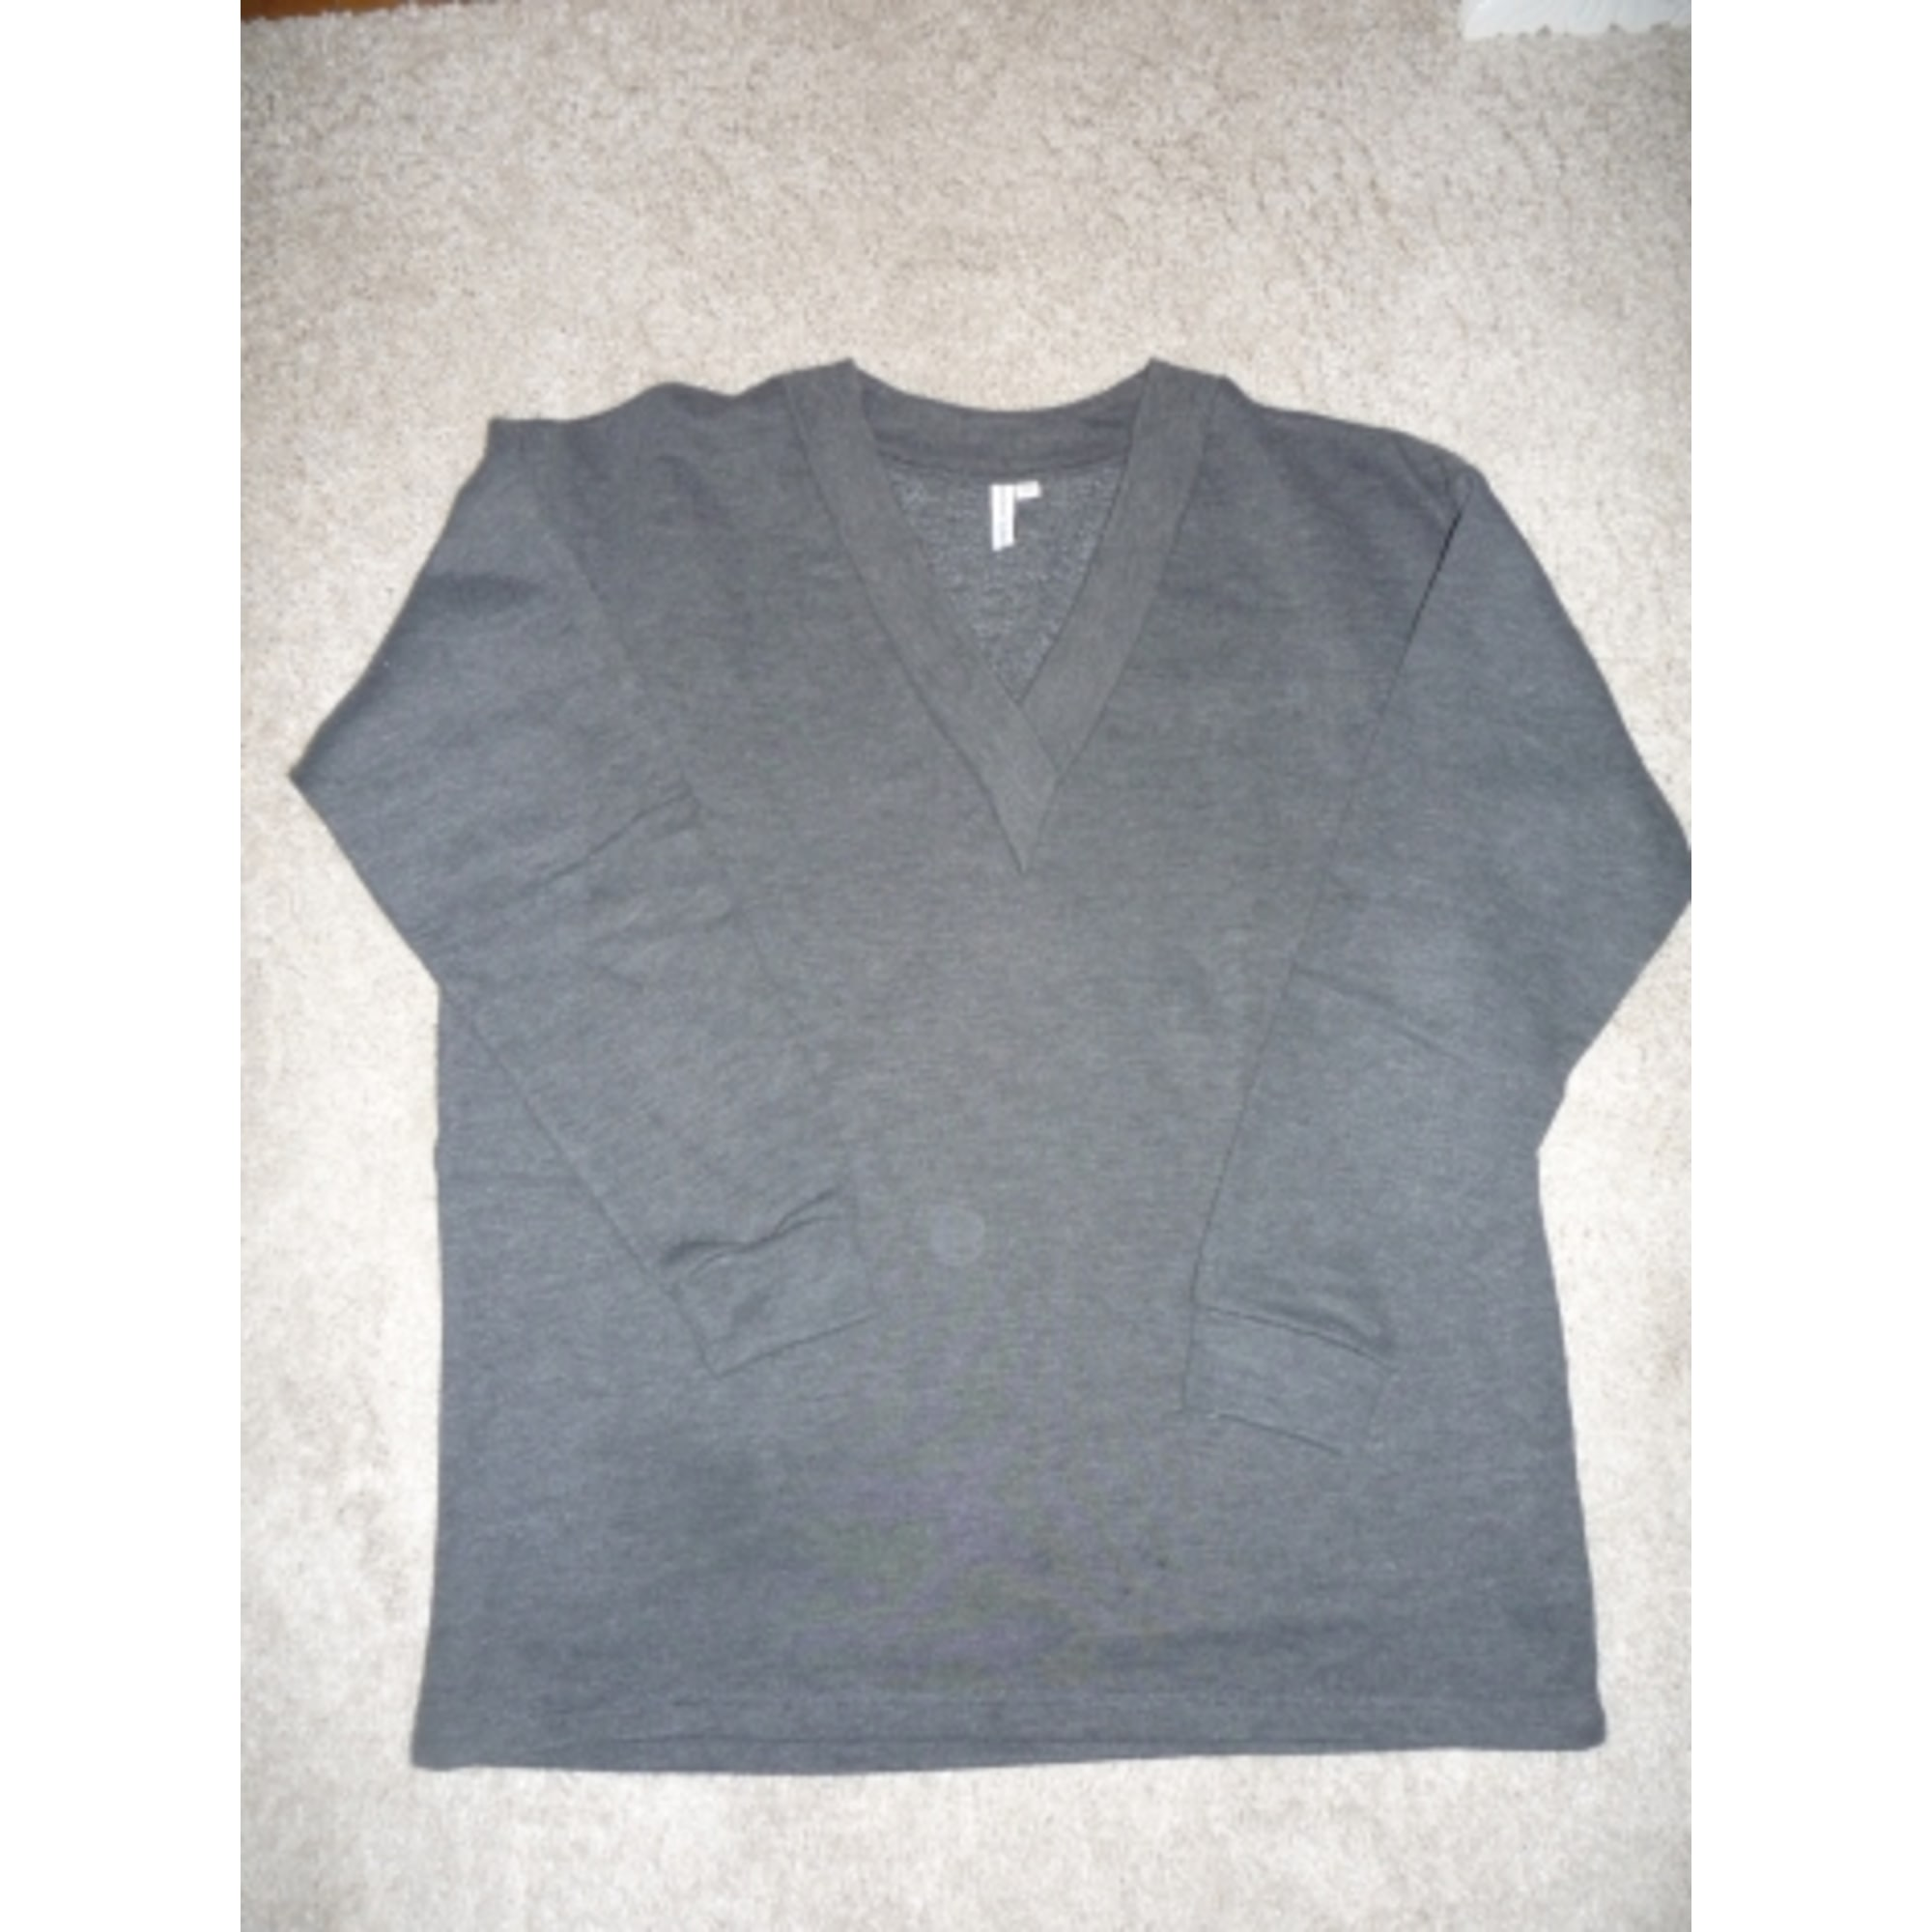 Sweat & OTHER STORIES Gris, anthracite